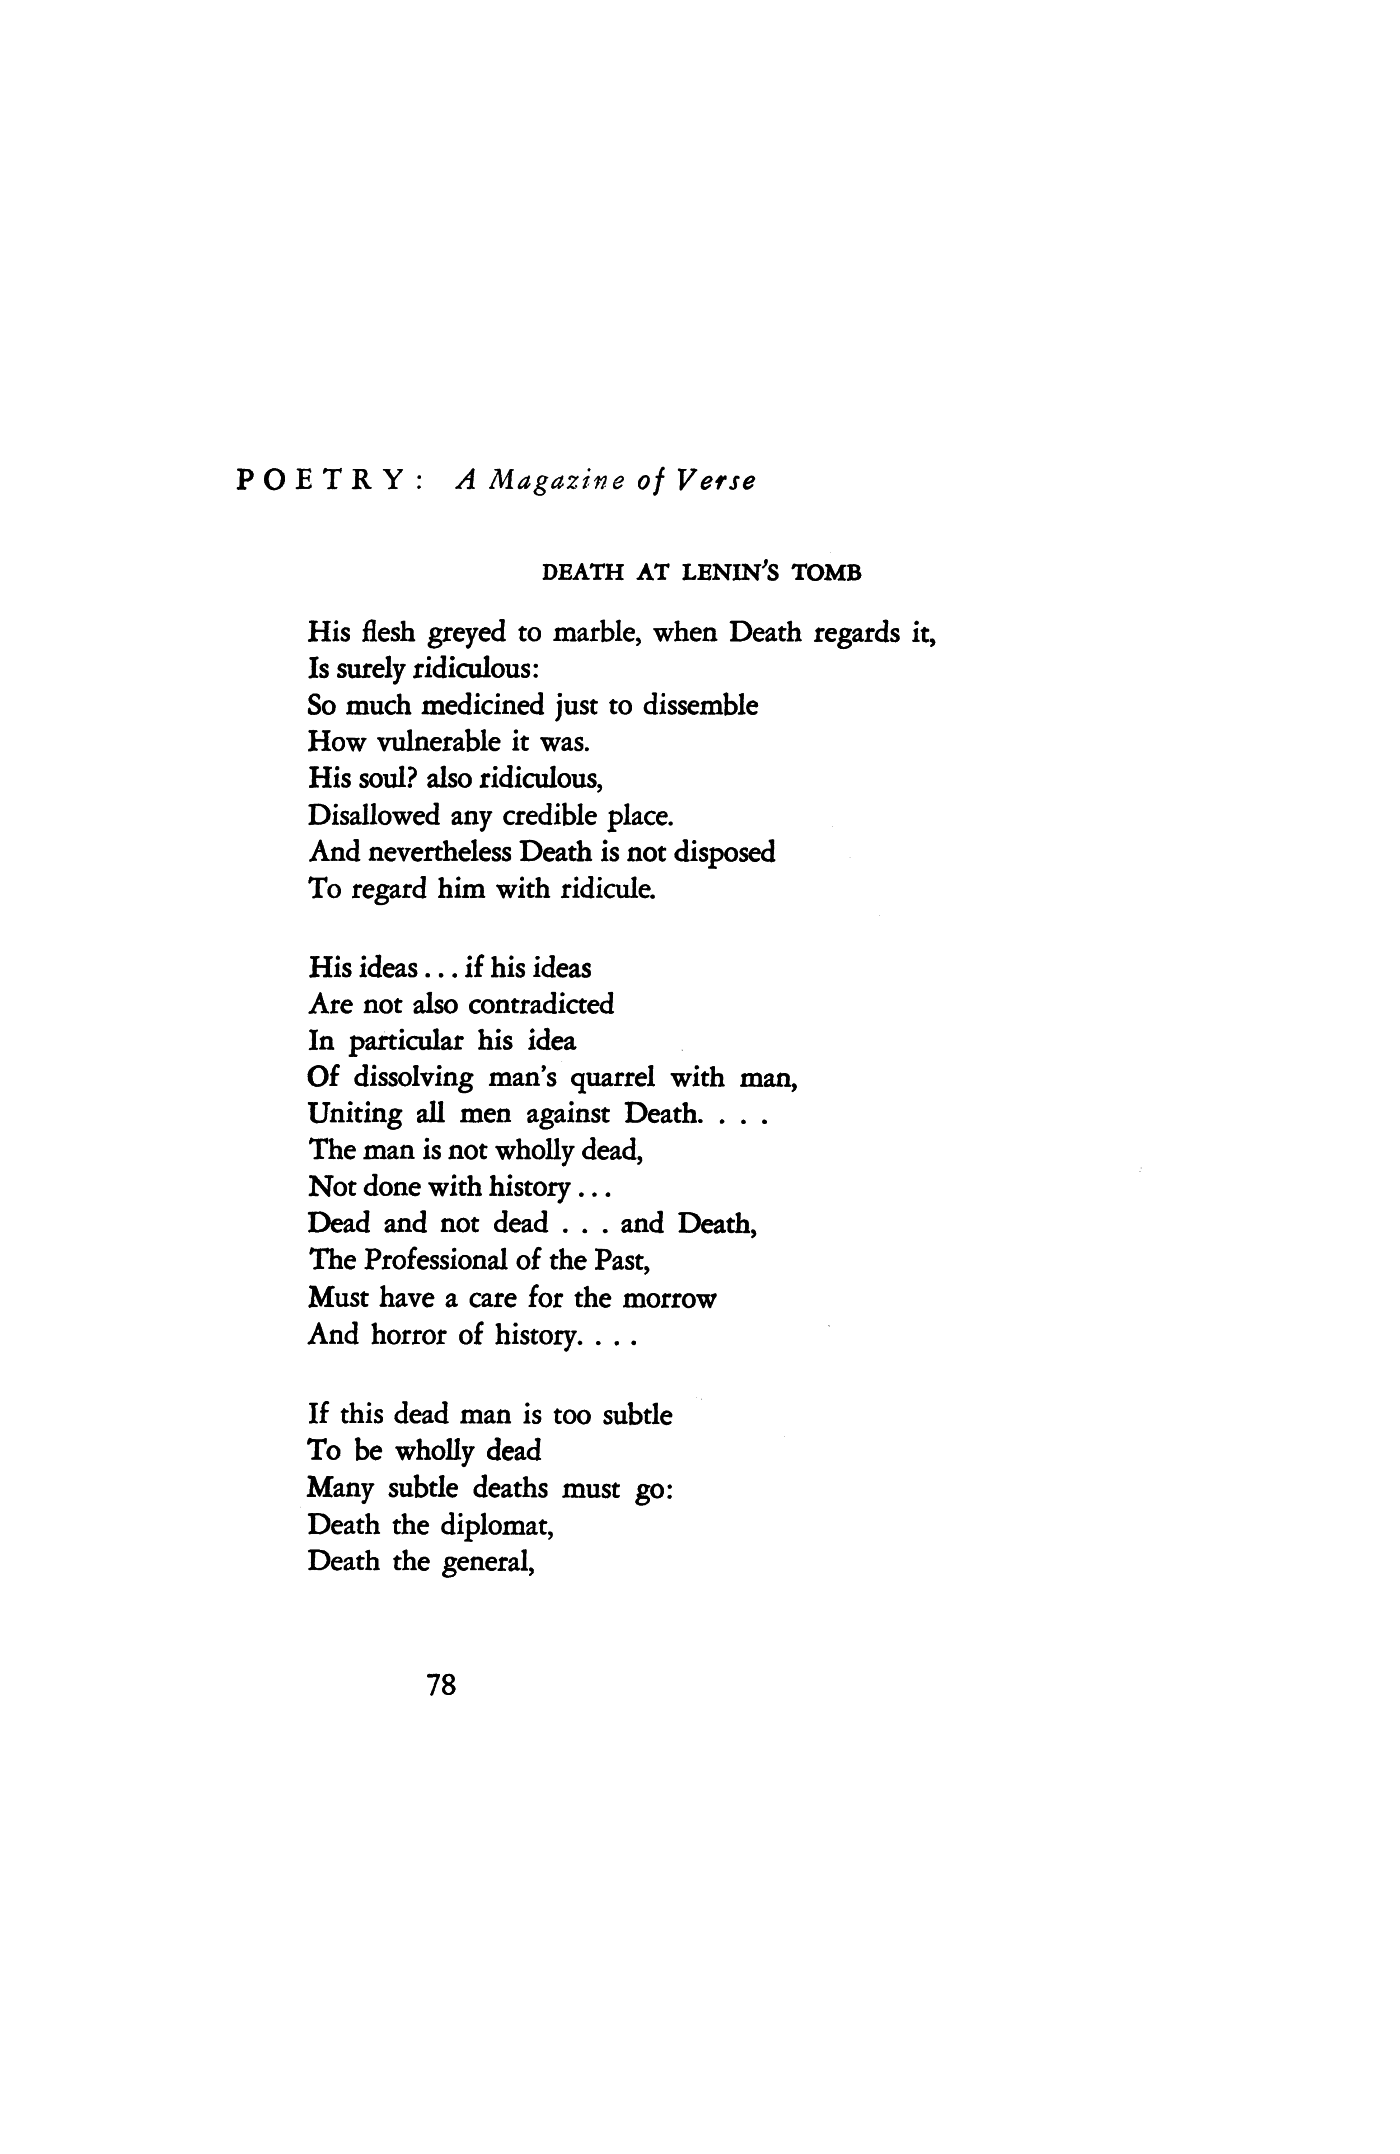 the theme of gambling in robert hunters poems A tour of the archive with stephanie anderson on my first visit to the poetry archive i dipped in to see what was there, and discovered there was far more to hear.